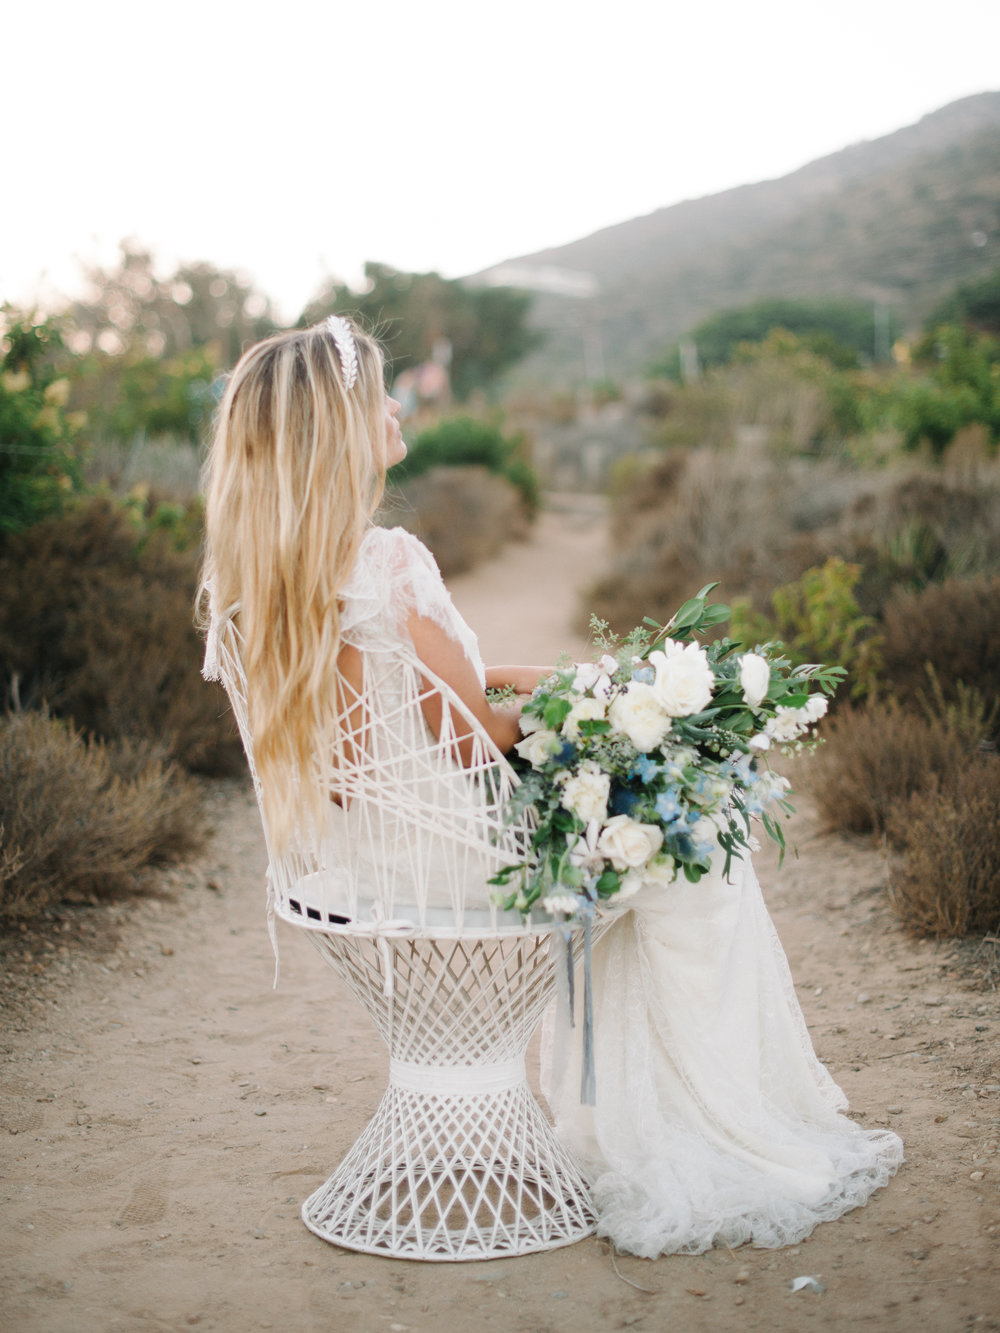 Los Angeles Malibu California Destination Wedding Planner Designer Brilliant Wedding Co.